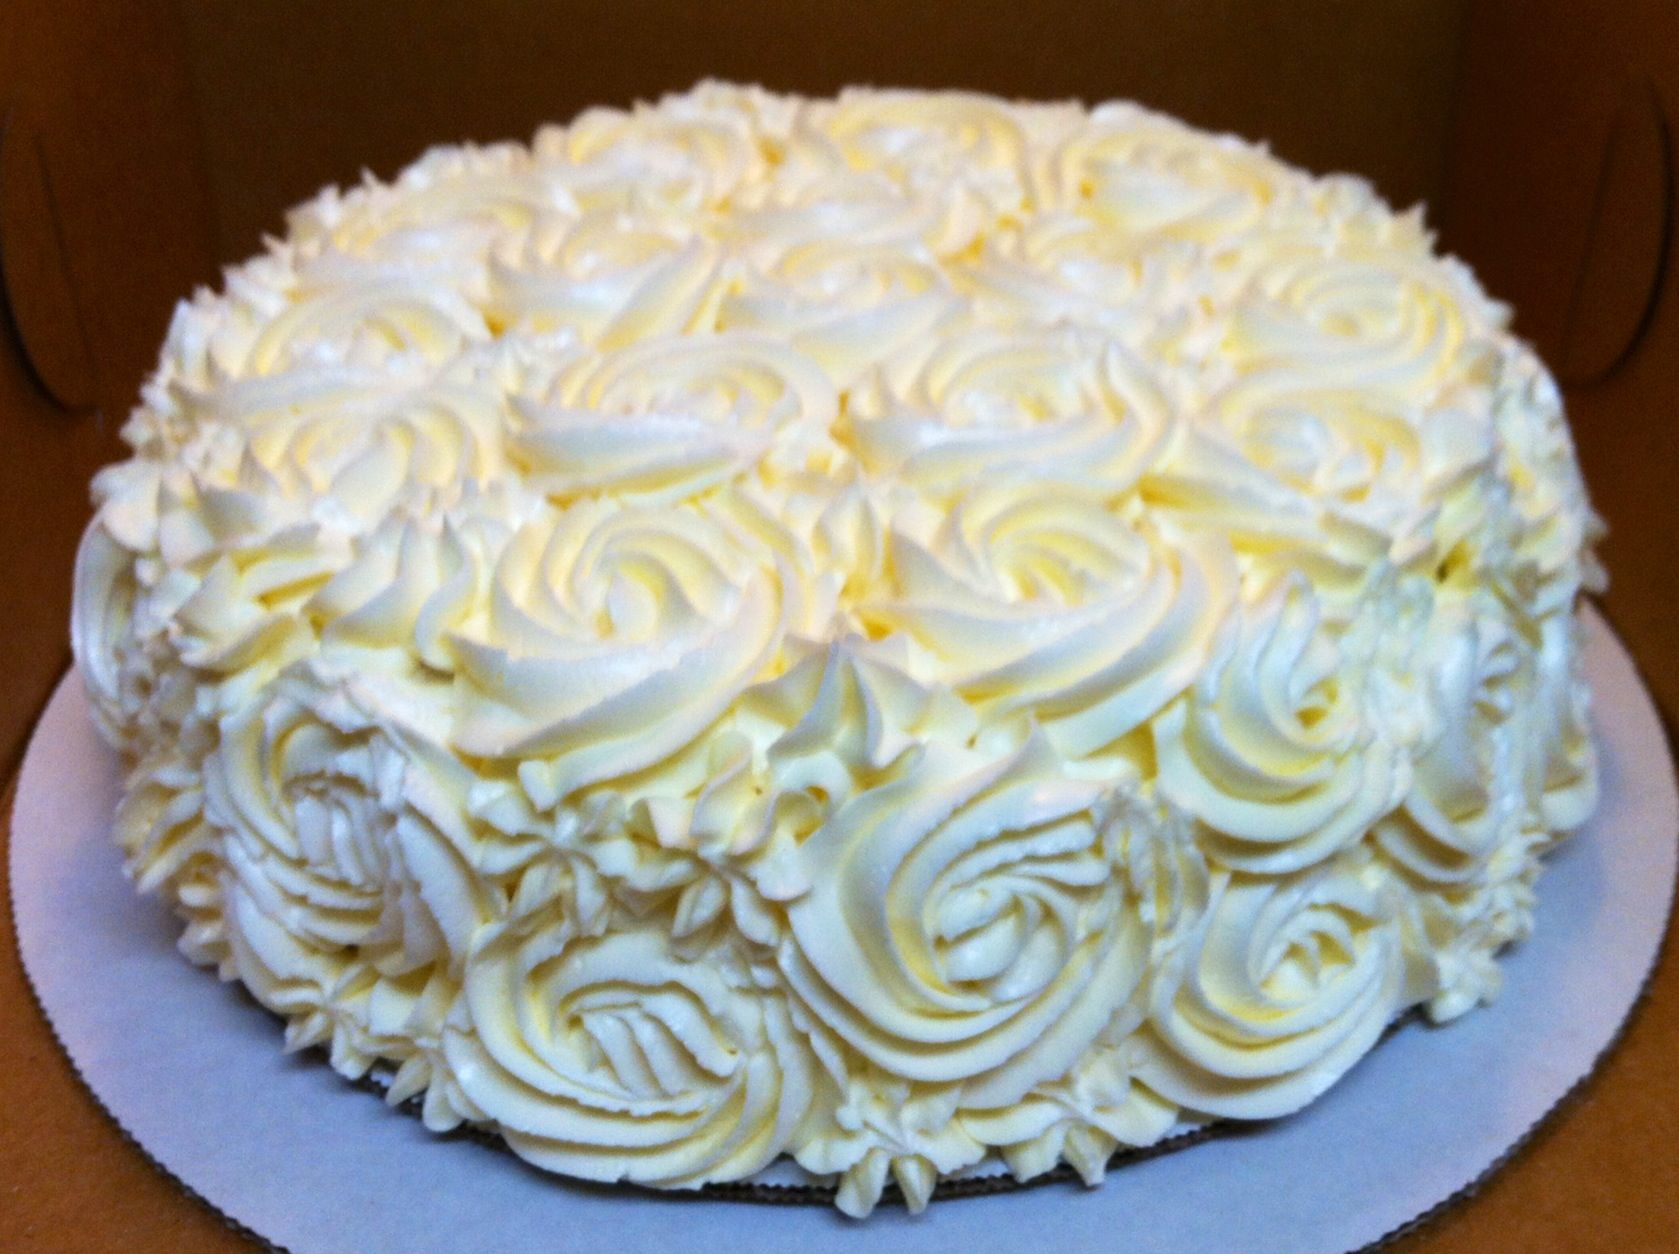 Top Of A Wedding Cake Coconut Chiffon With Italian Ercream Frosting Pipped As Rosettes